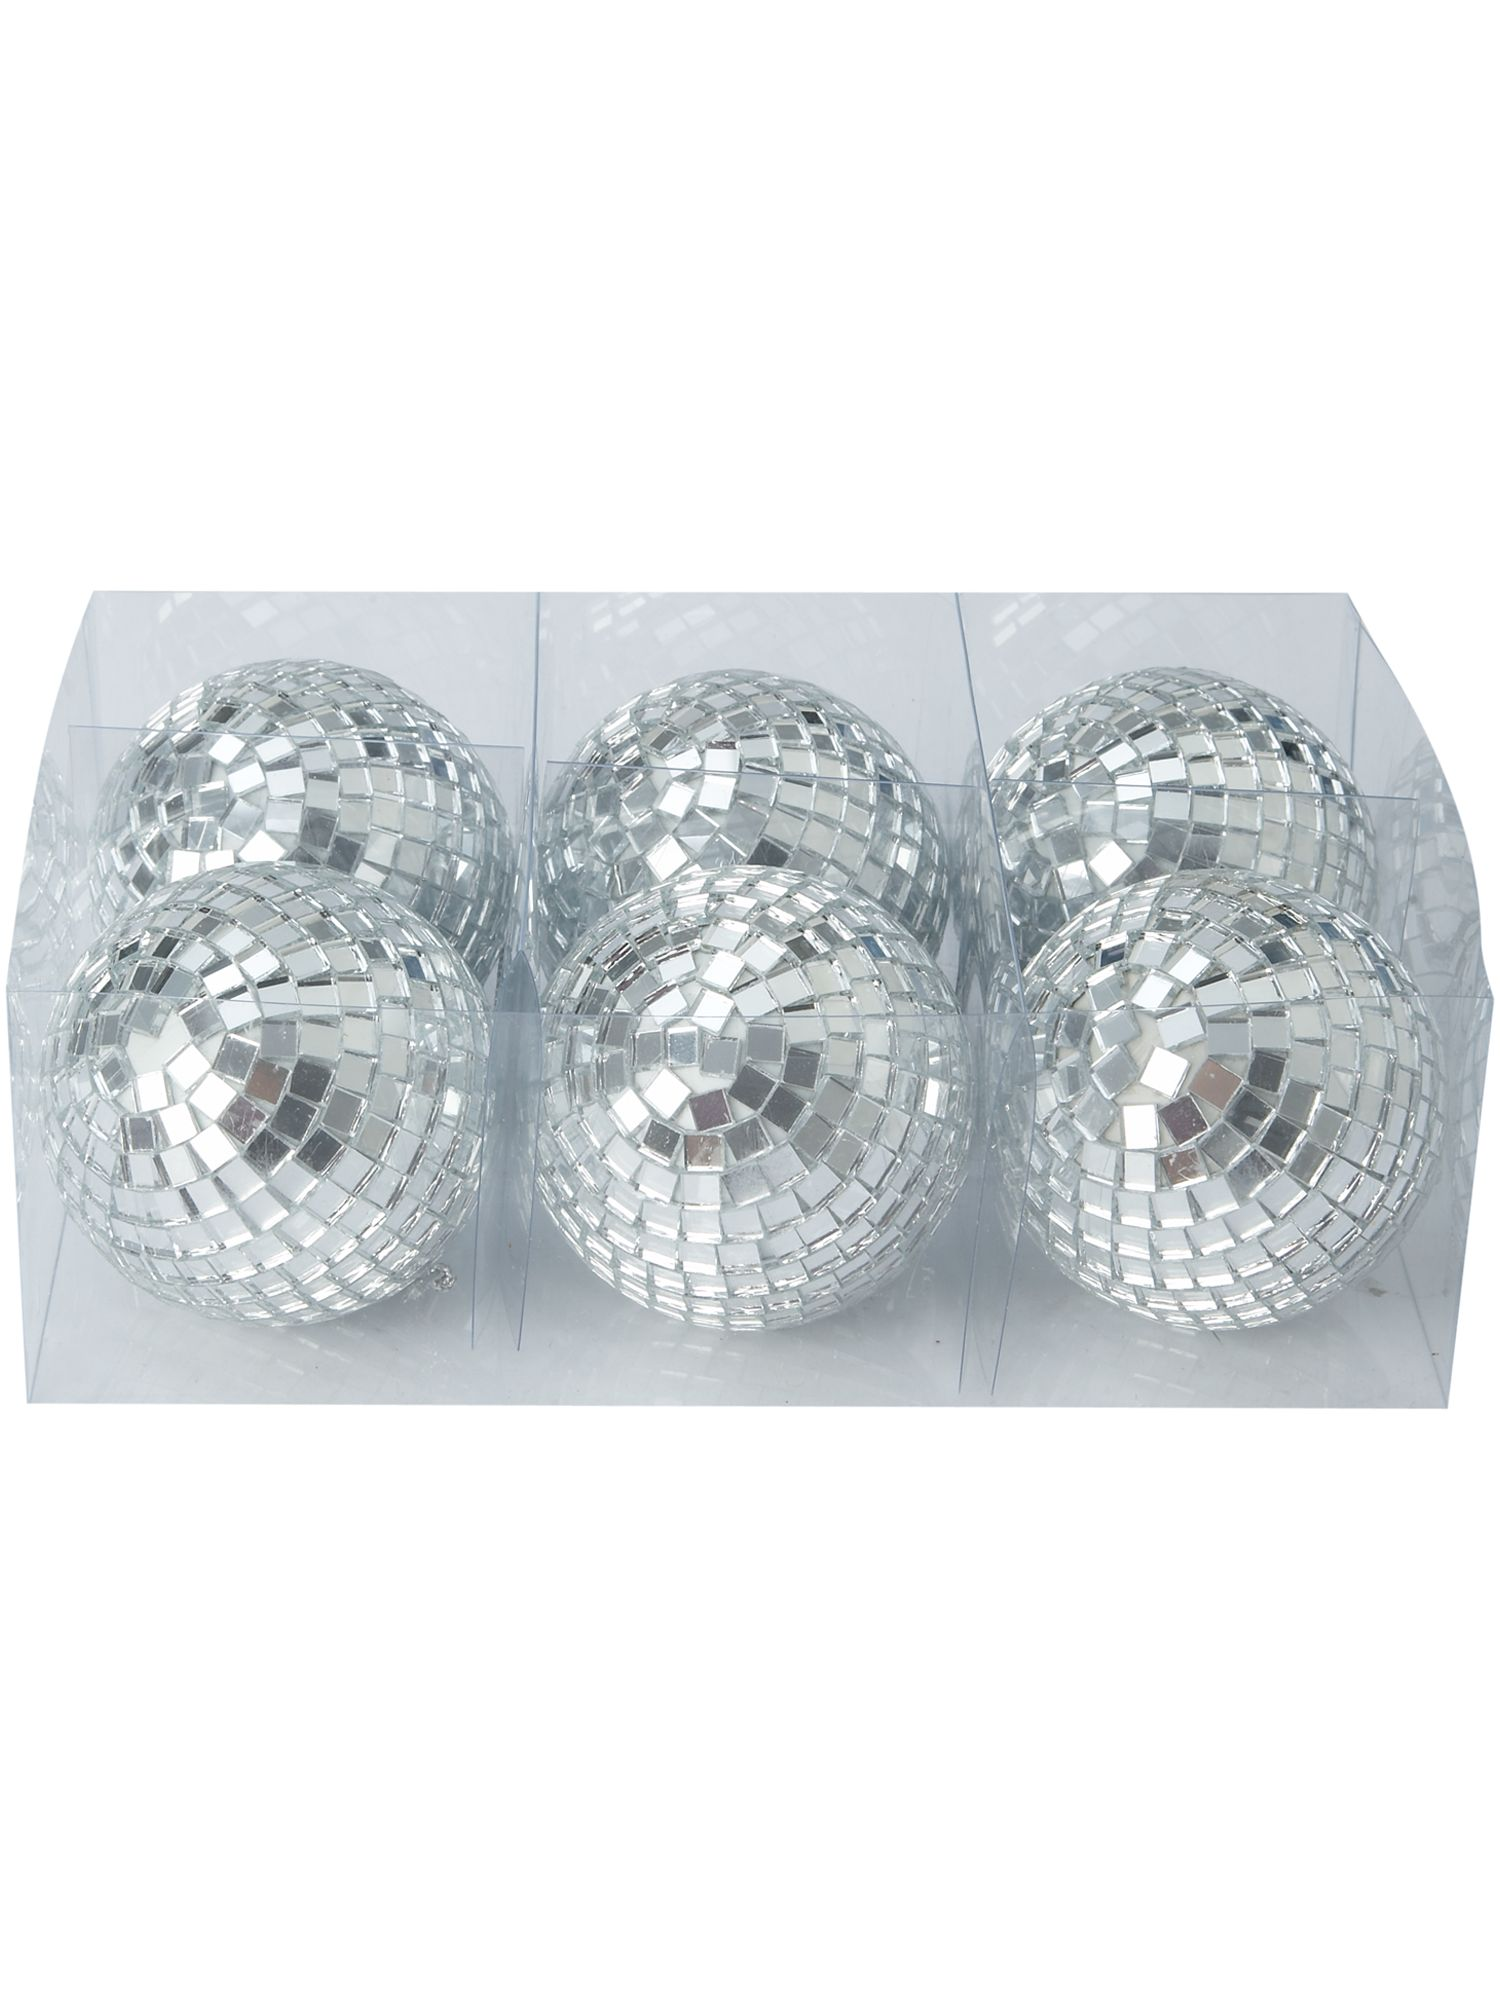 Eclipse set of 6 mirrored ball decorations